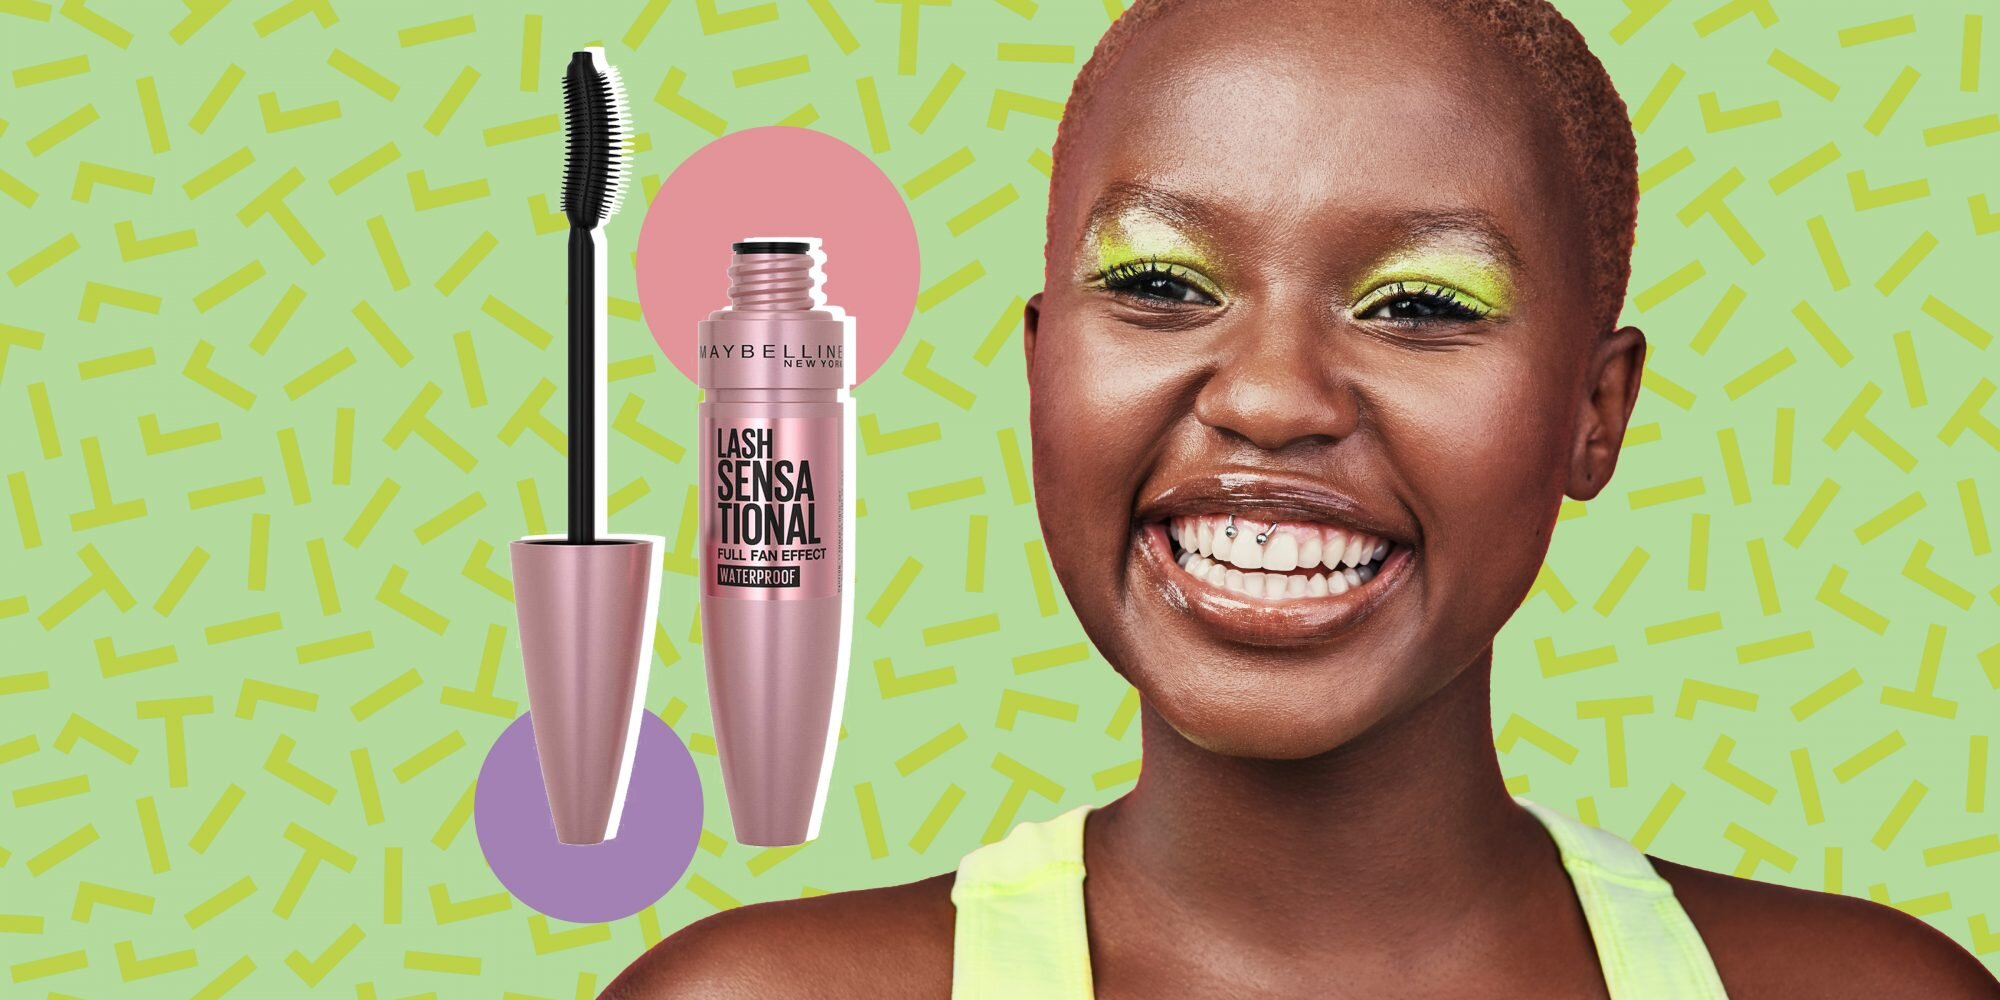 Over 46,000 People Keep This 'Holy Grail' Mascara in Their Beauty Arsenal-and It's Only $4